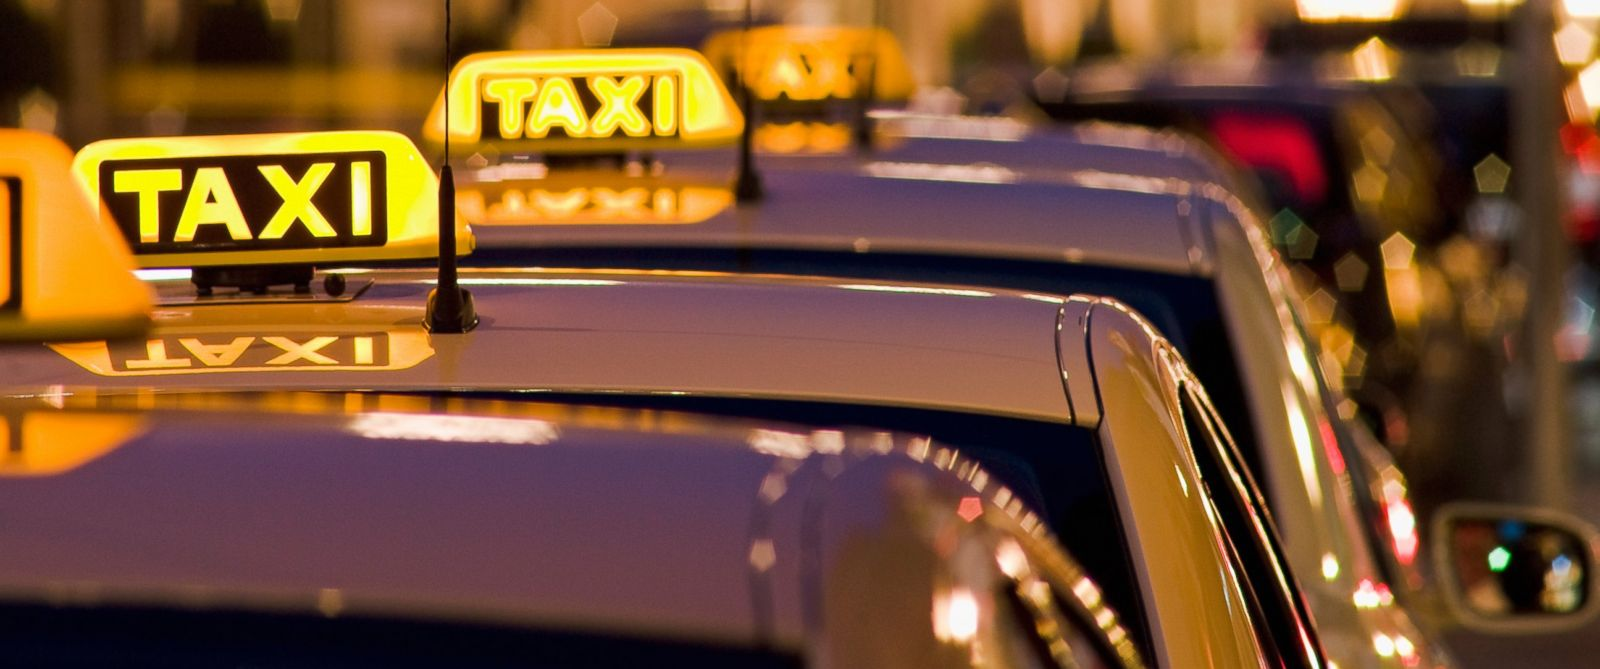 PHOTO: A line of taxi cabs are pictured in this stock image.